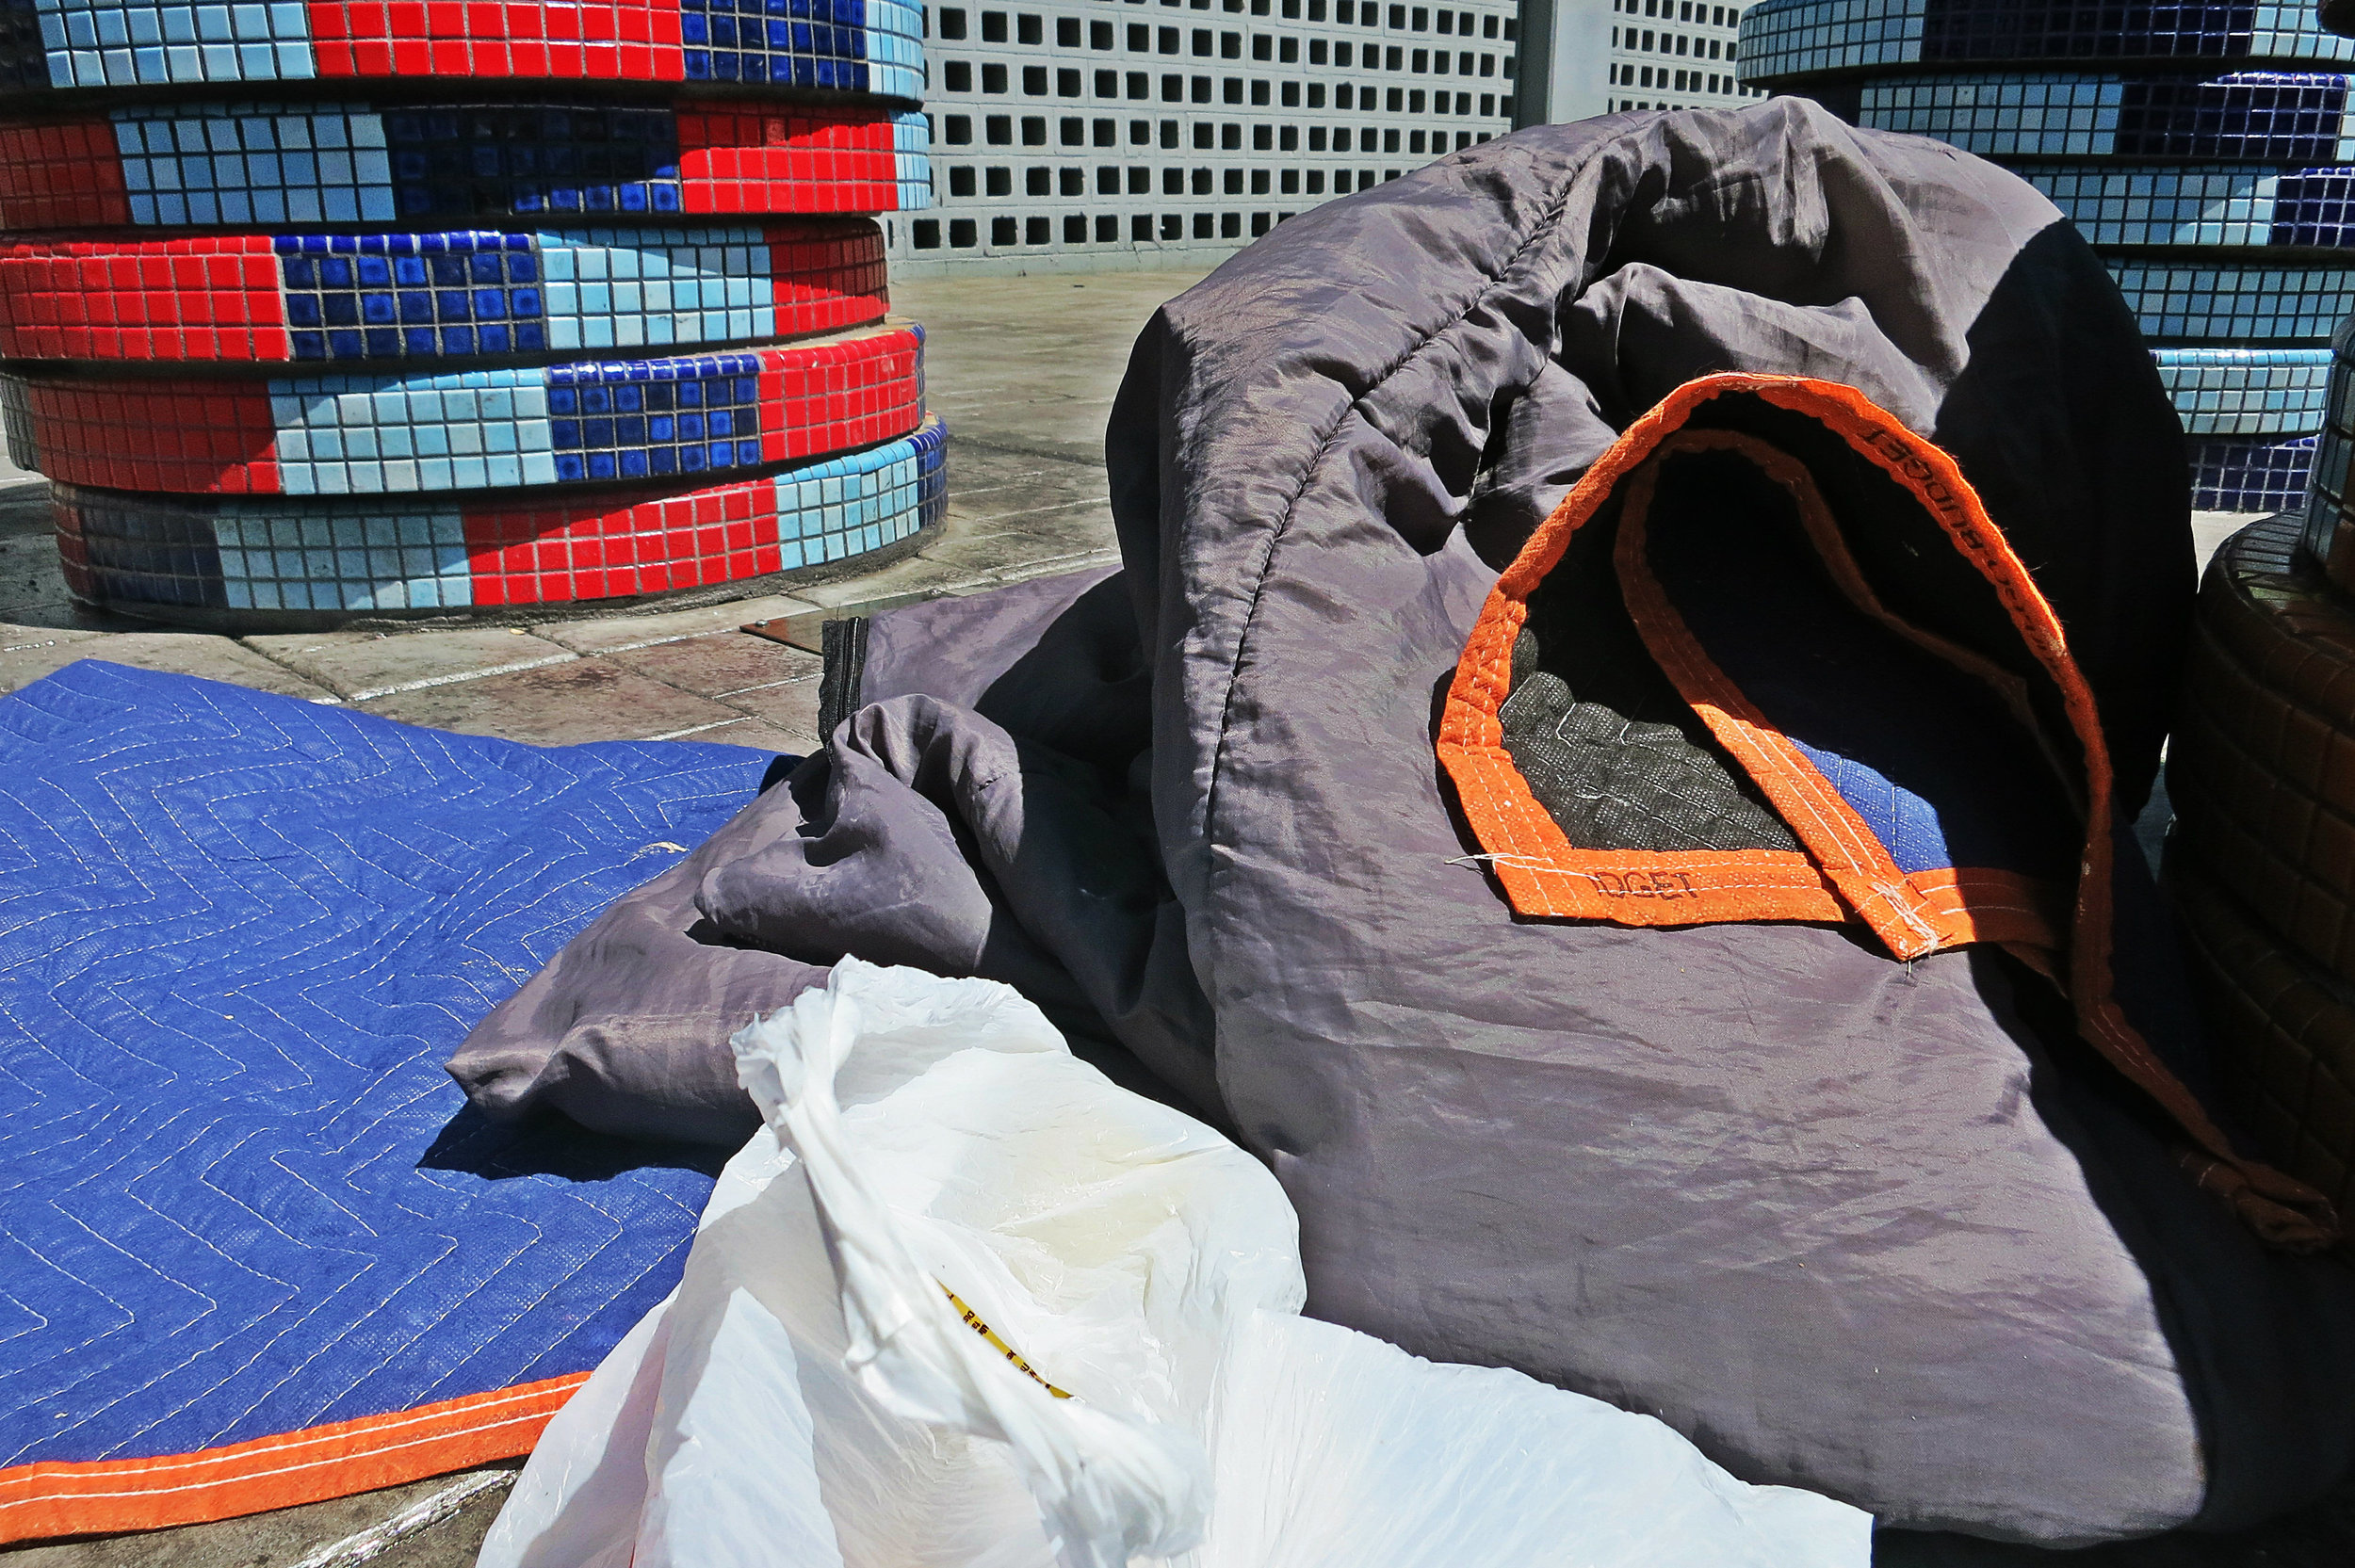 Grackle recently lost stuff and was down to blankets, a sleeping bag, a tobacco can without much tobacco left, food stamps, a flask and a lunch sack.